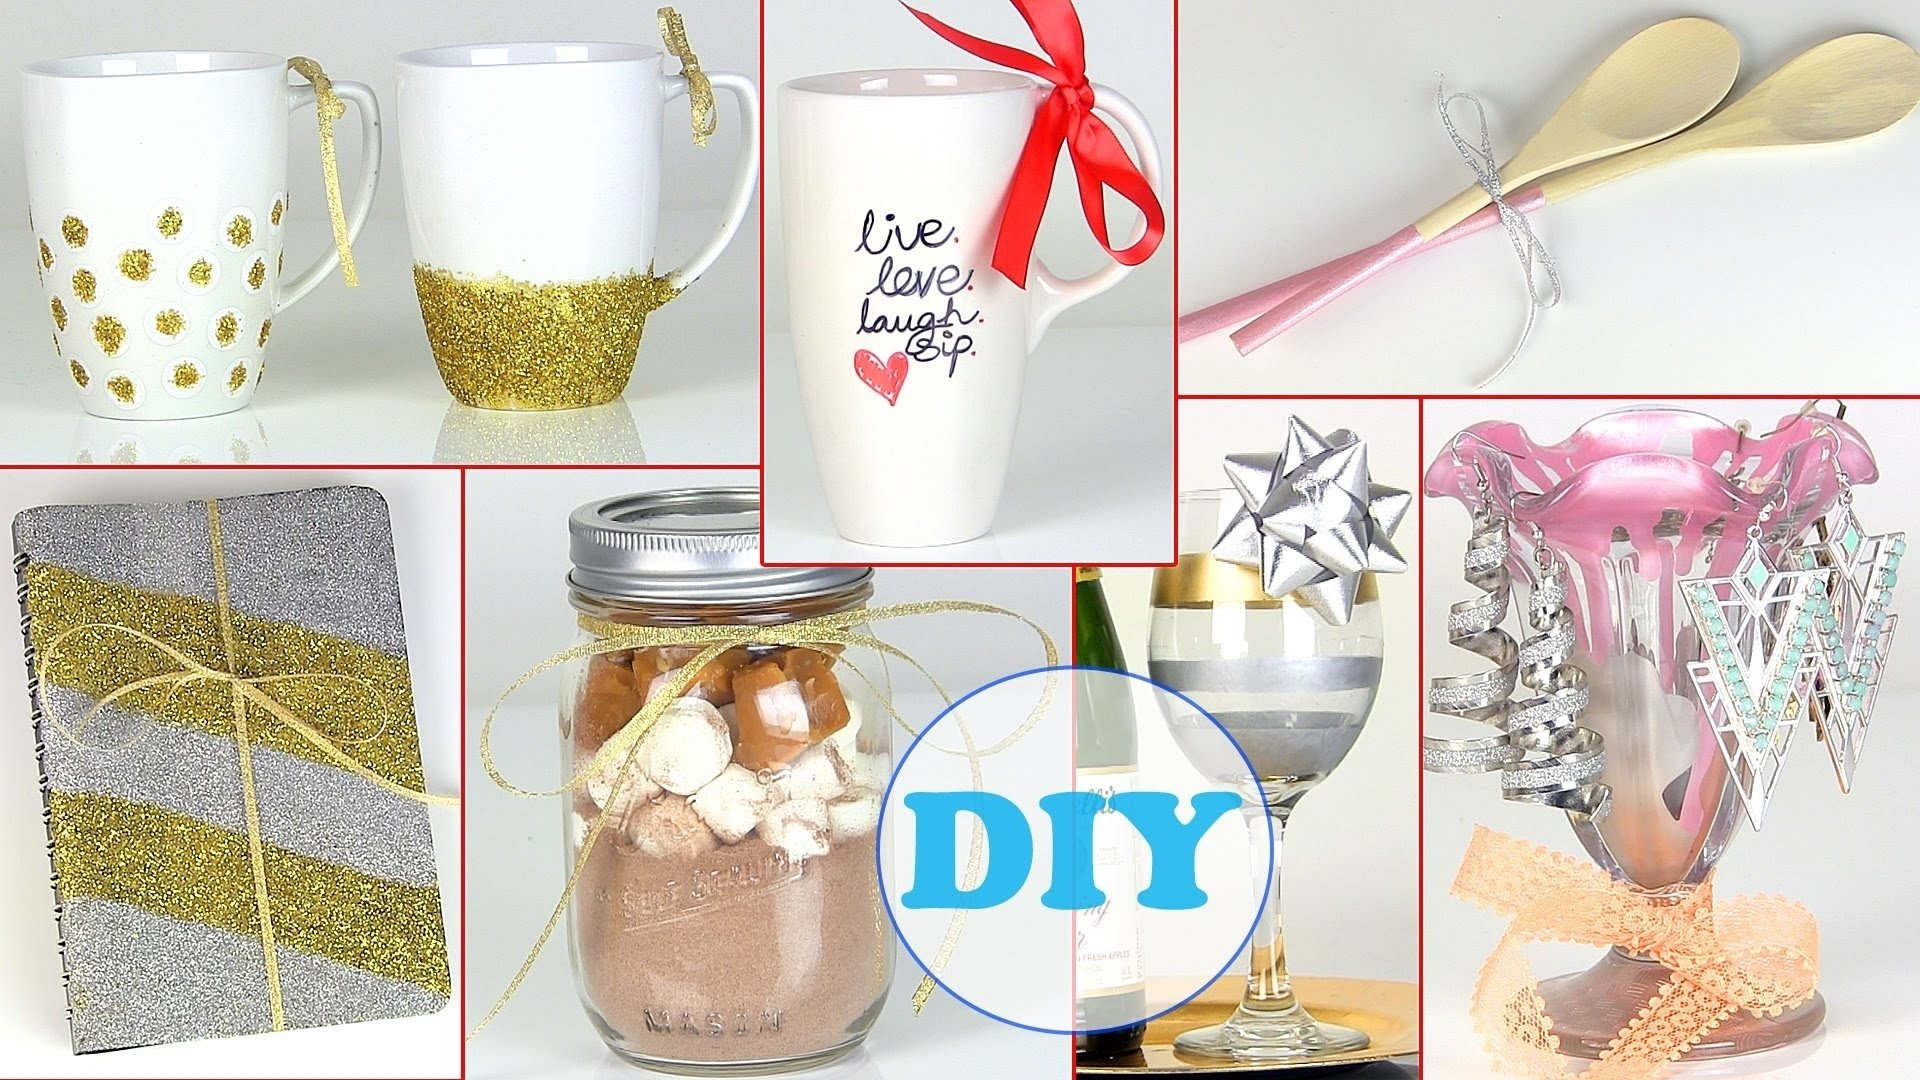 10 Lovable Last Minute Homemade Gift Ideas 10 diy gift ideas last minute diy holiday gift ideas youtube 1 2020